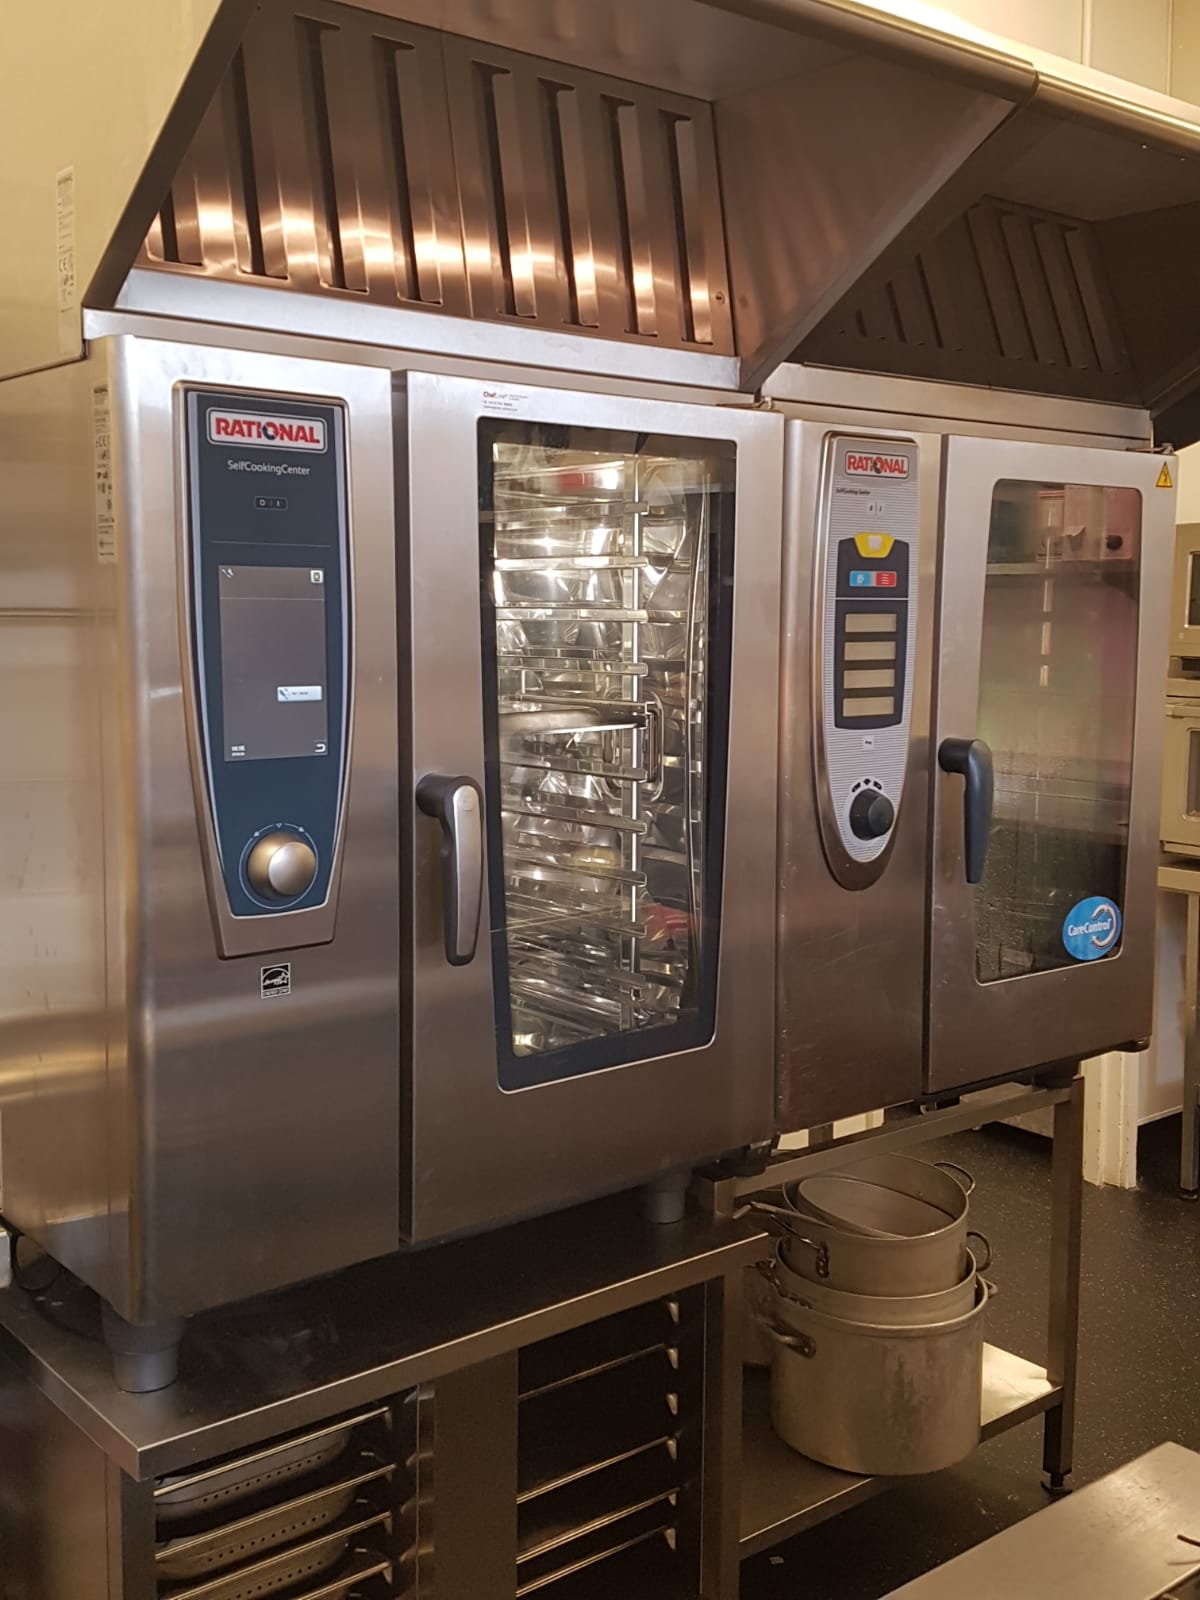 10 Grid Rational Combi Oven With Ultravent Catermek